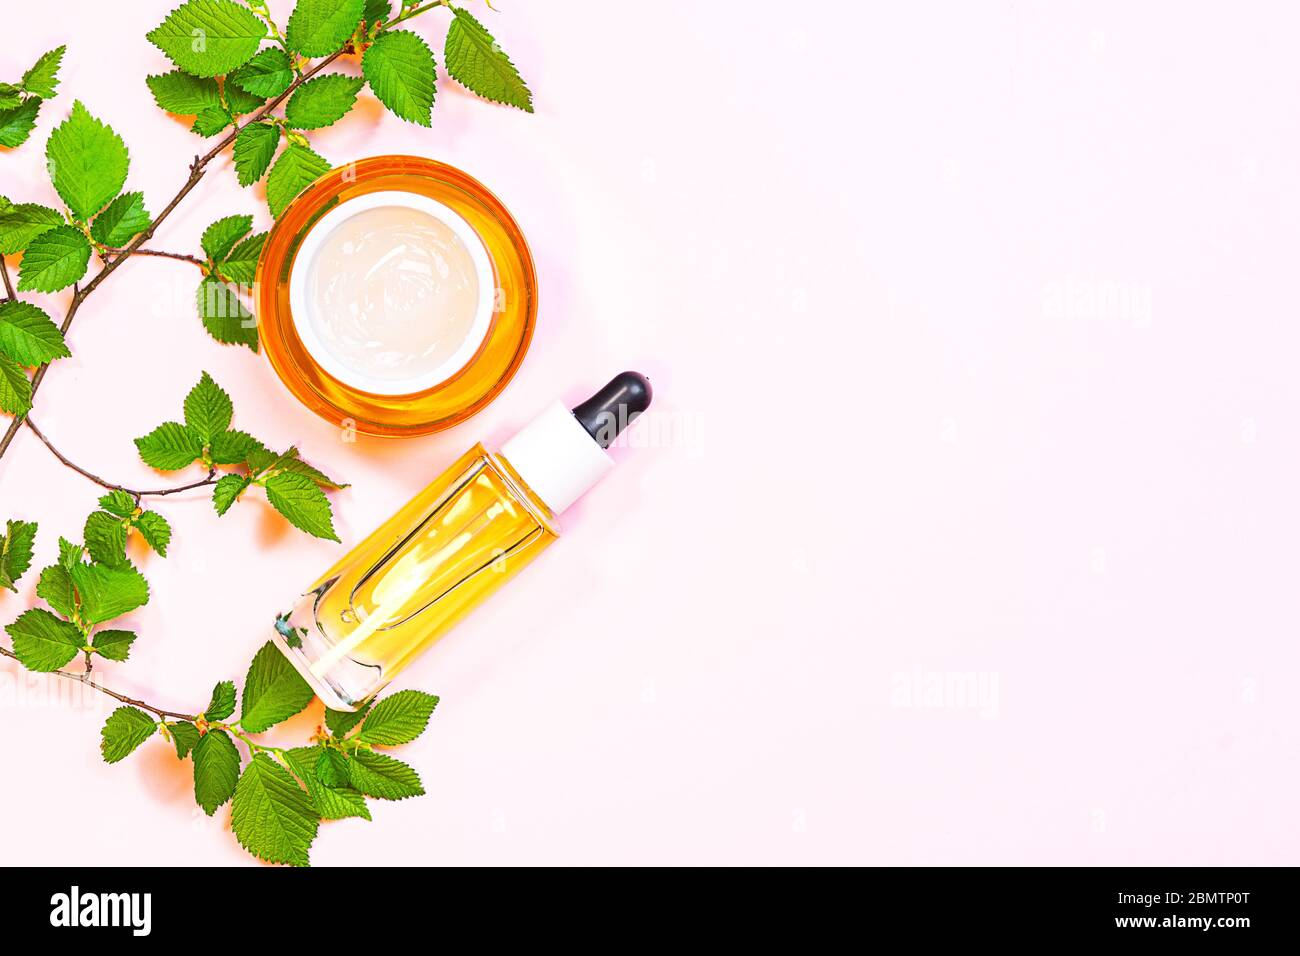 Skin Care Beauty Products Natural Cosmetic Flat Lay Image On Pink Background Natural Cosmetic Skincare Bottle Serum And Organic Green Leaf Homemade And Beauty Product Concept Stock Photo Alamy